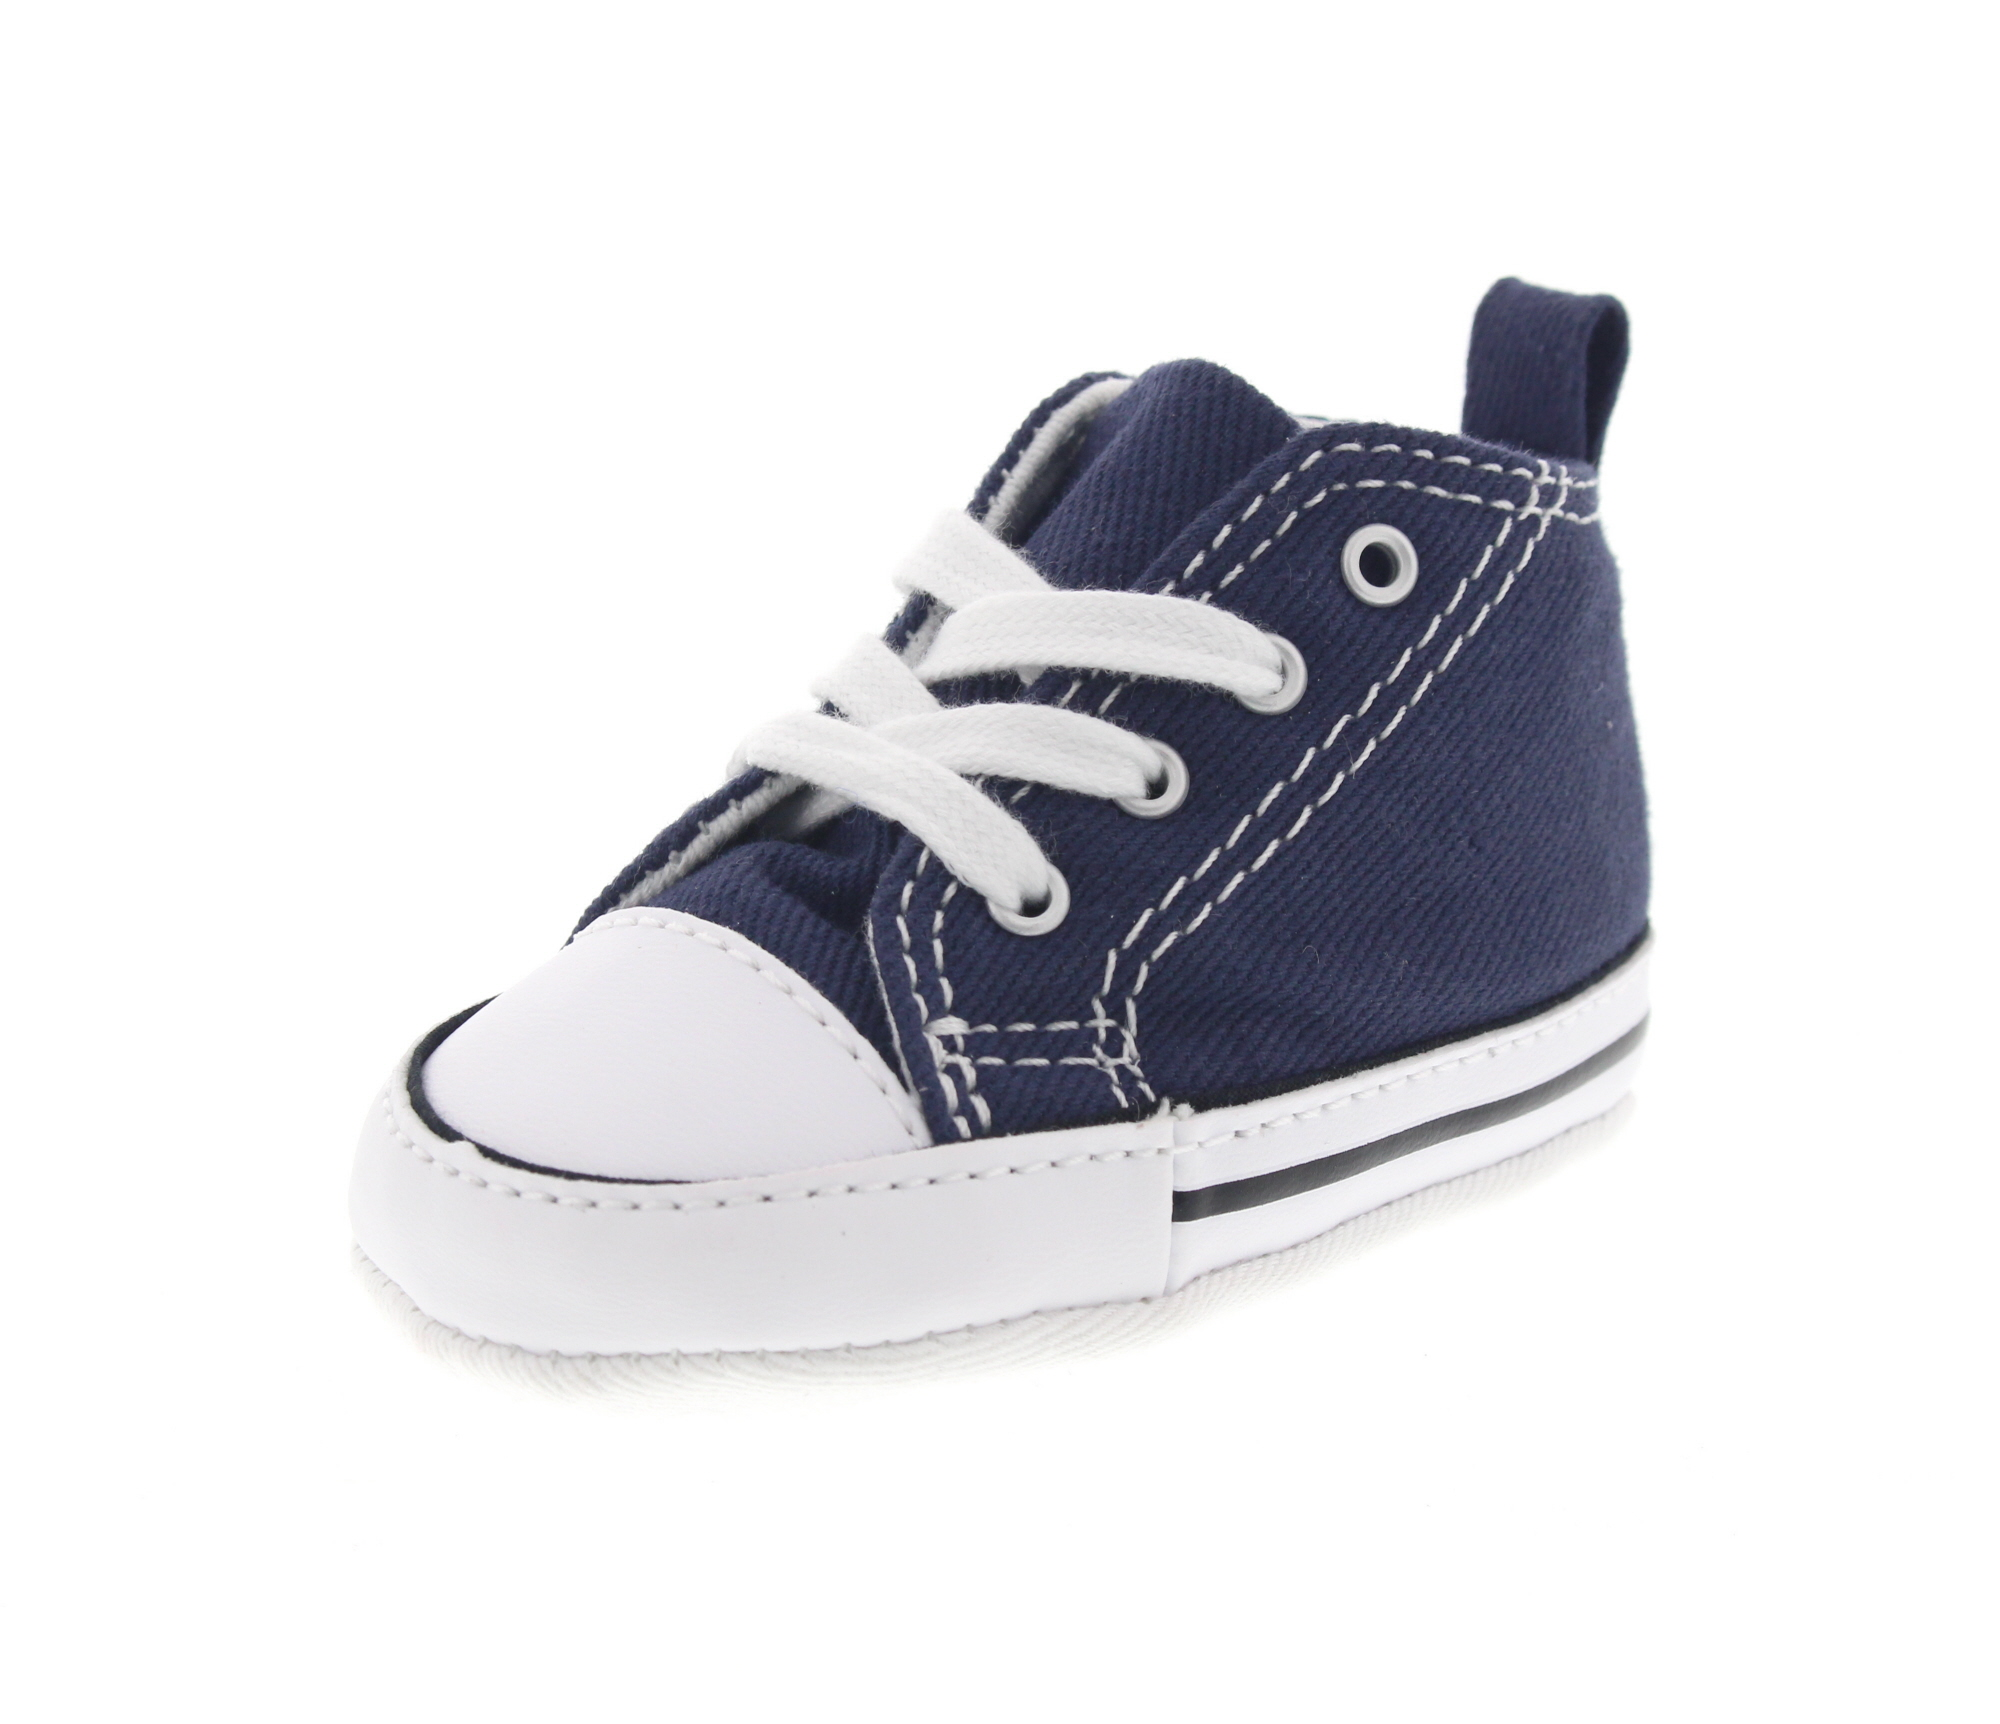 CONVERSE Kinderschuhe - FIRST STAR HI 88865 - navy-0